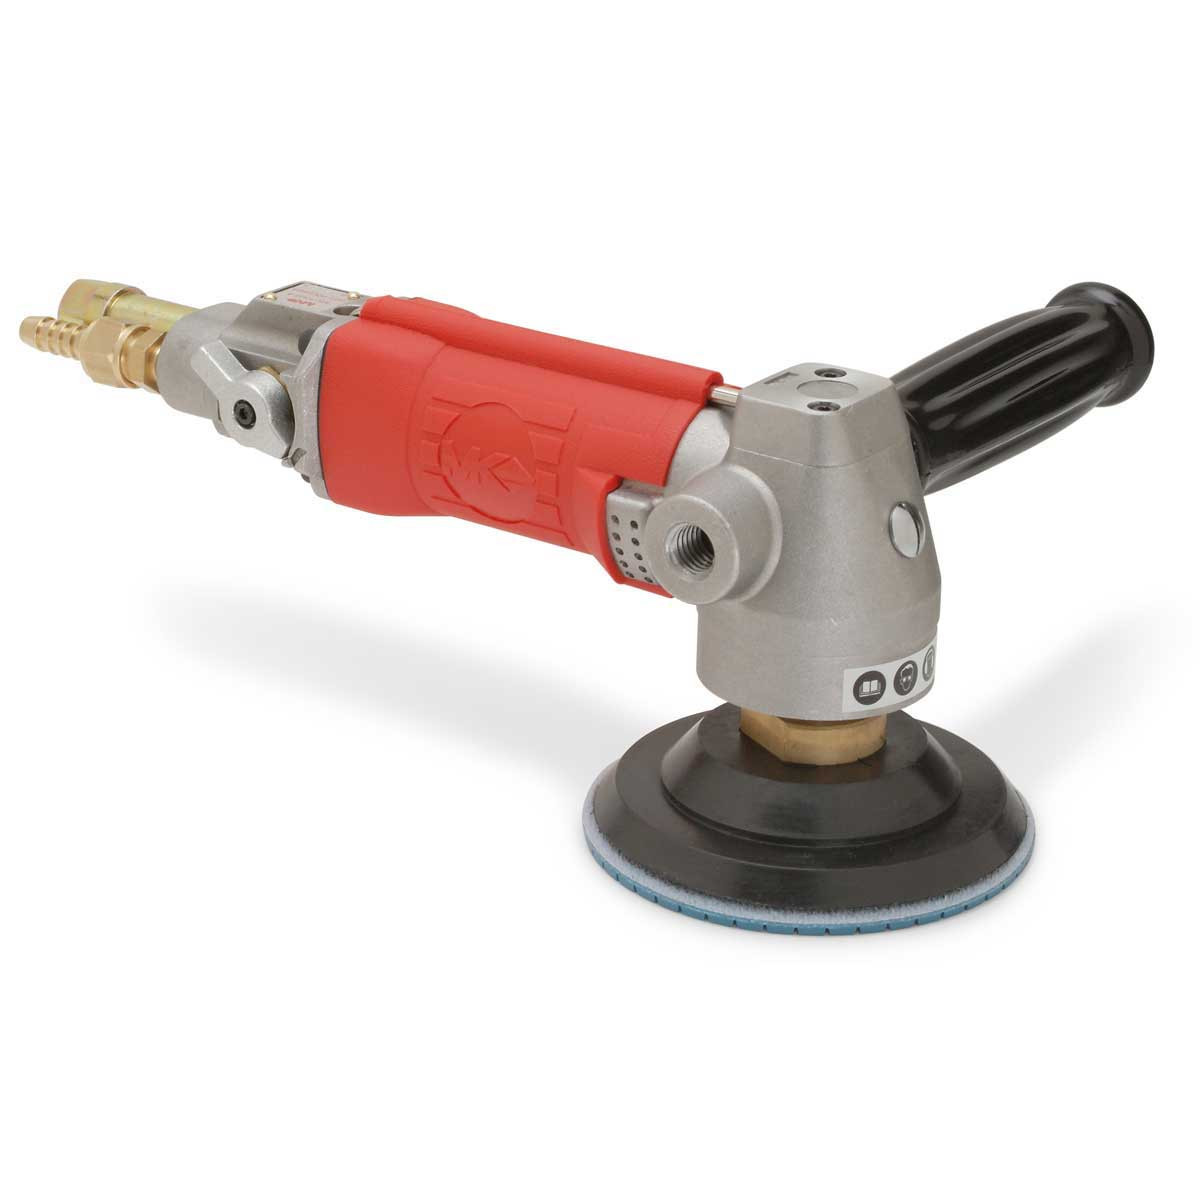 Wet Stone Polisher MK-1503